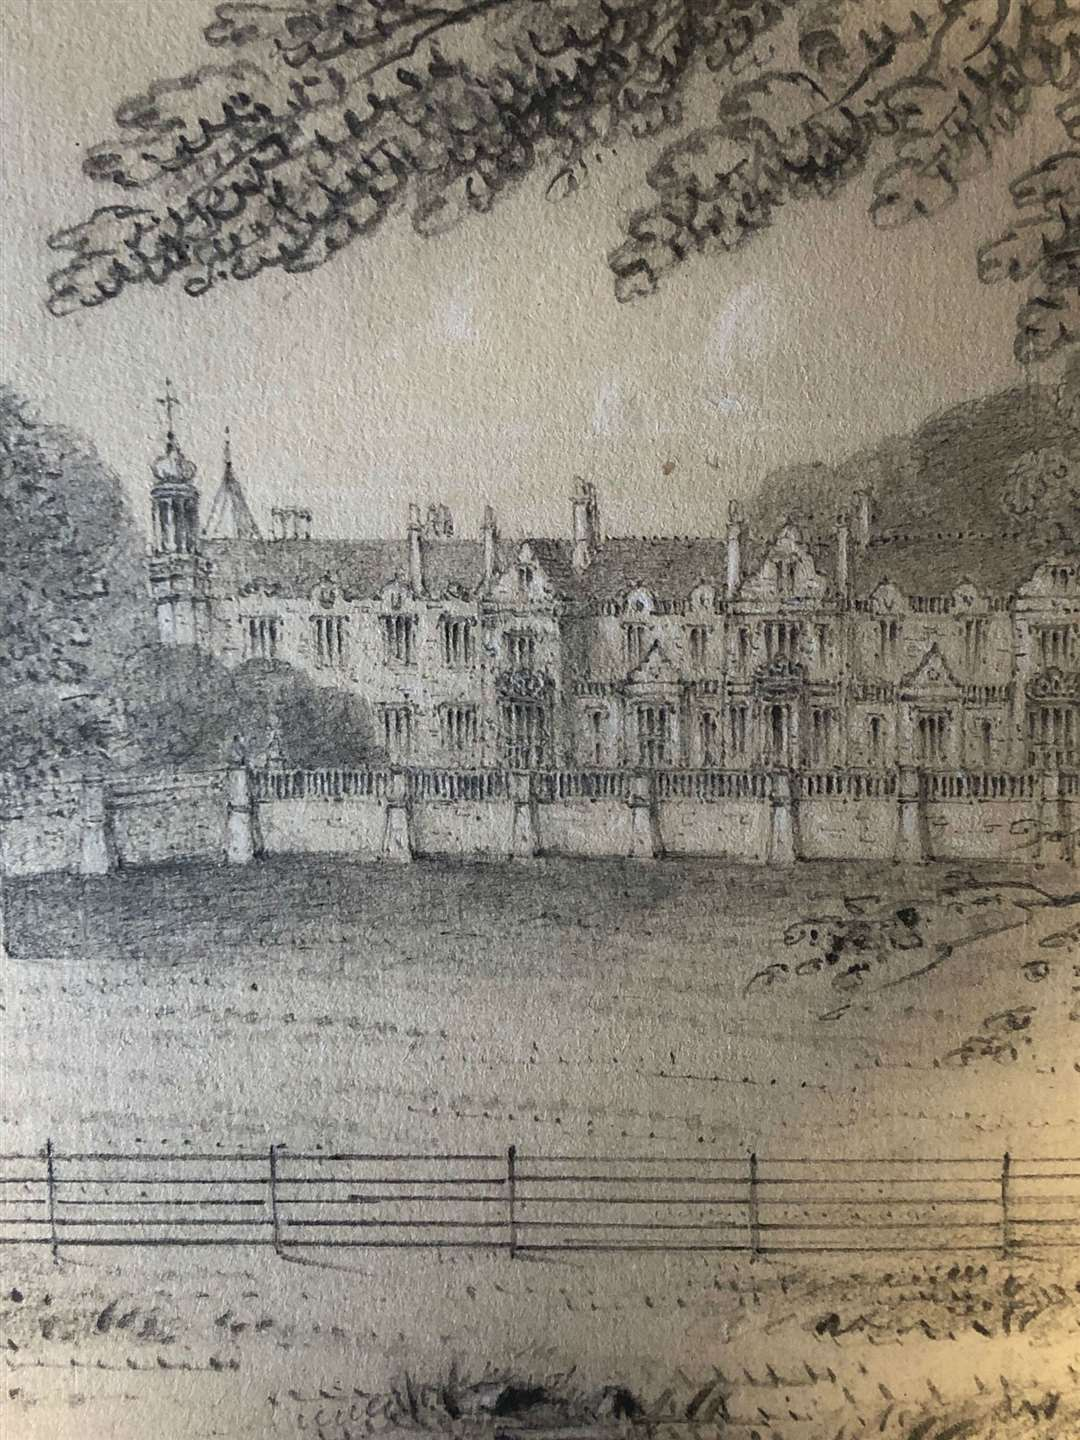 Auction Offers Rare Glimpse Of Lost Hardwick House In Bury